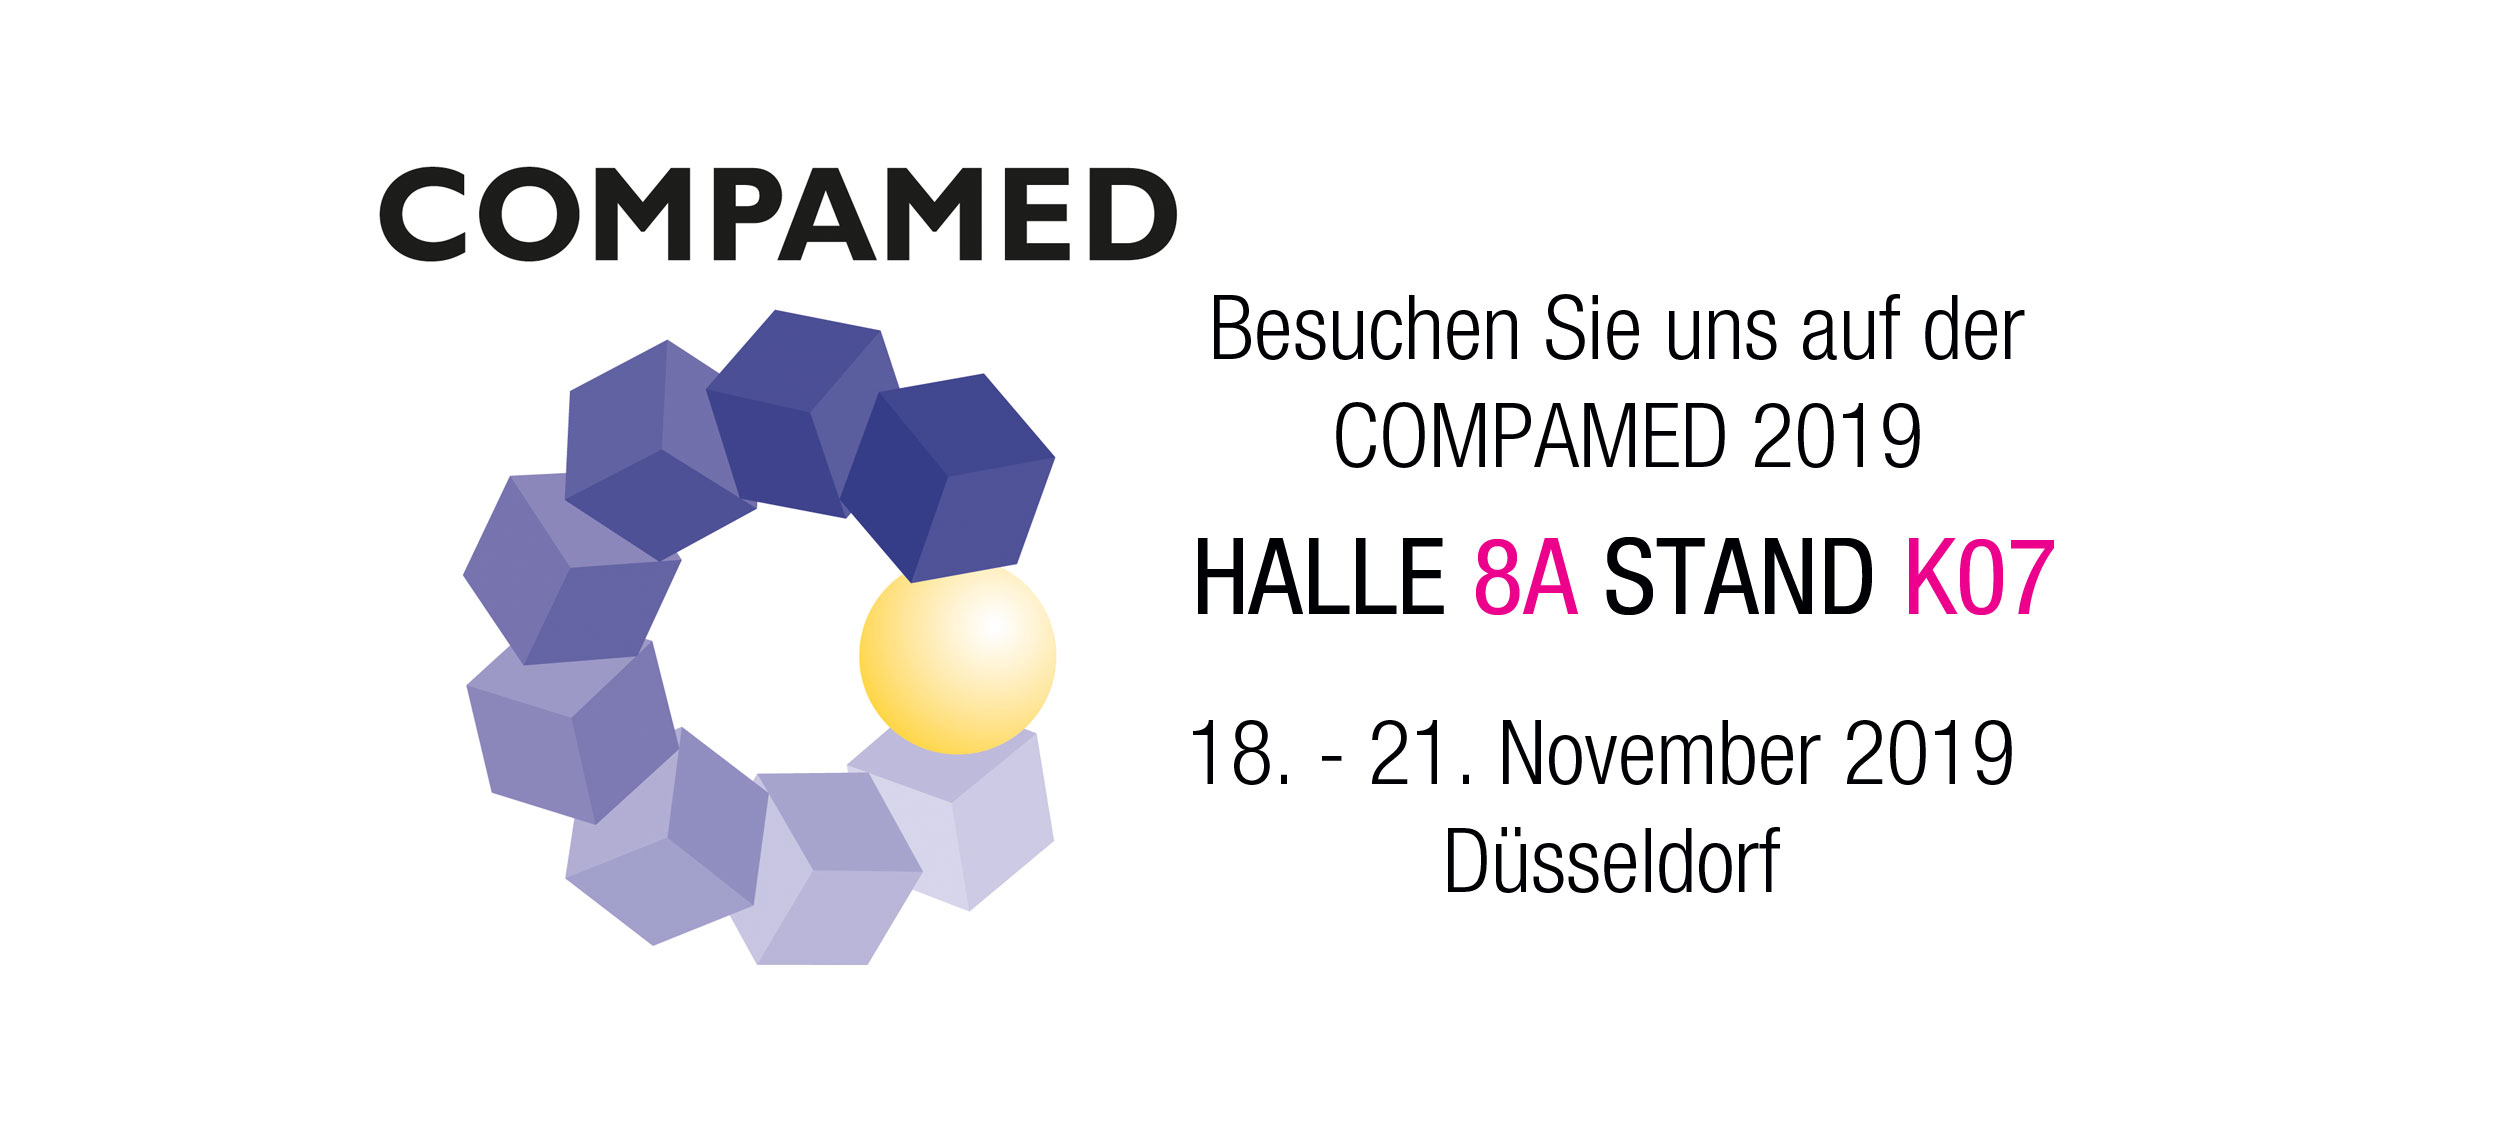 COMPAMED 2019 - 18. - 21. November in Düsseldorf